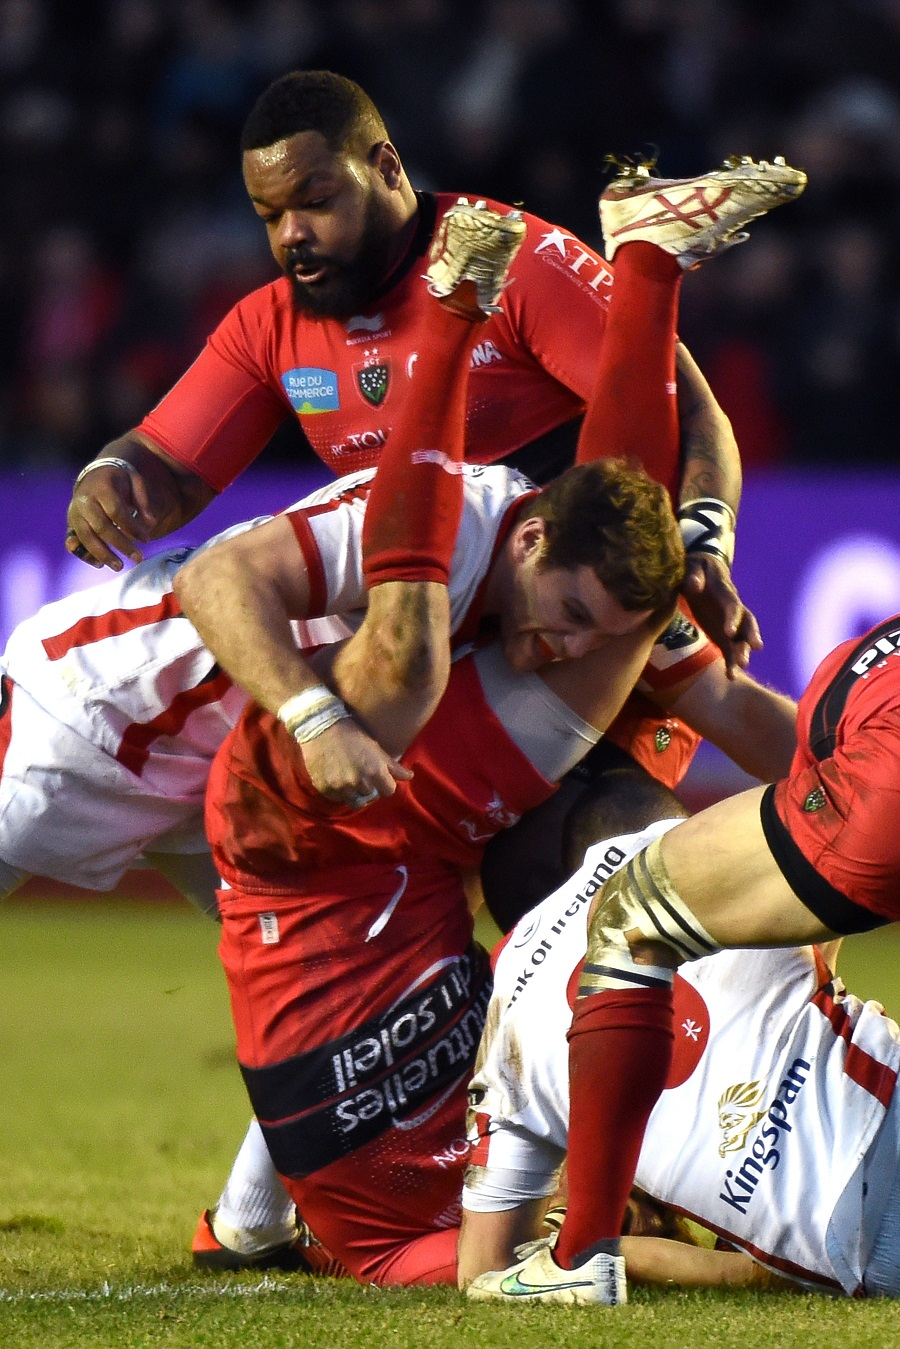 Ulster's Darren Cave finds himself in an uncomfortable spot